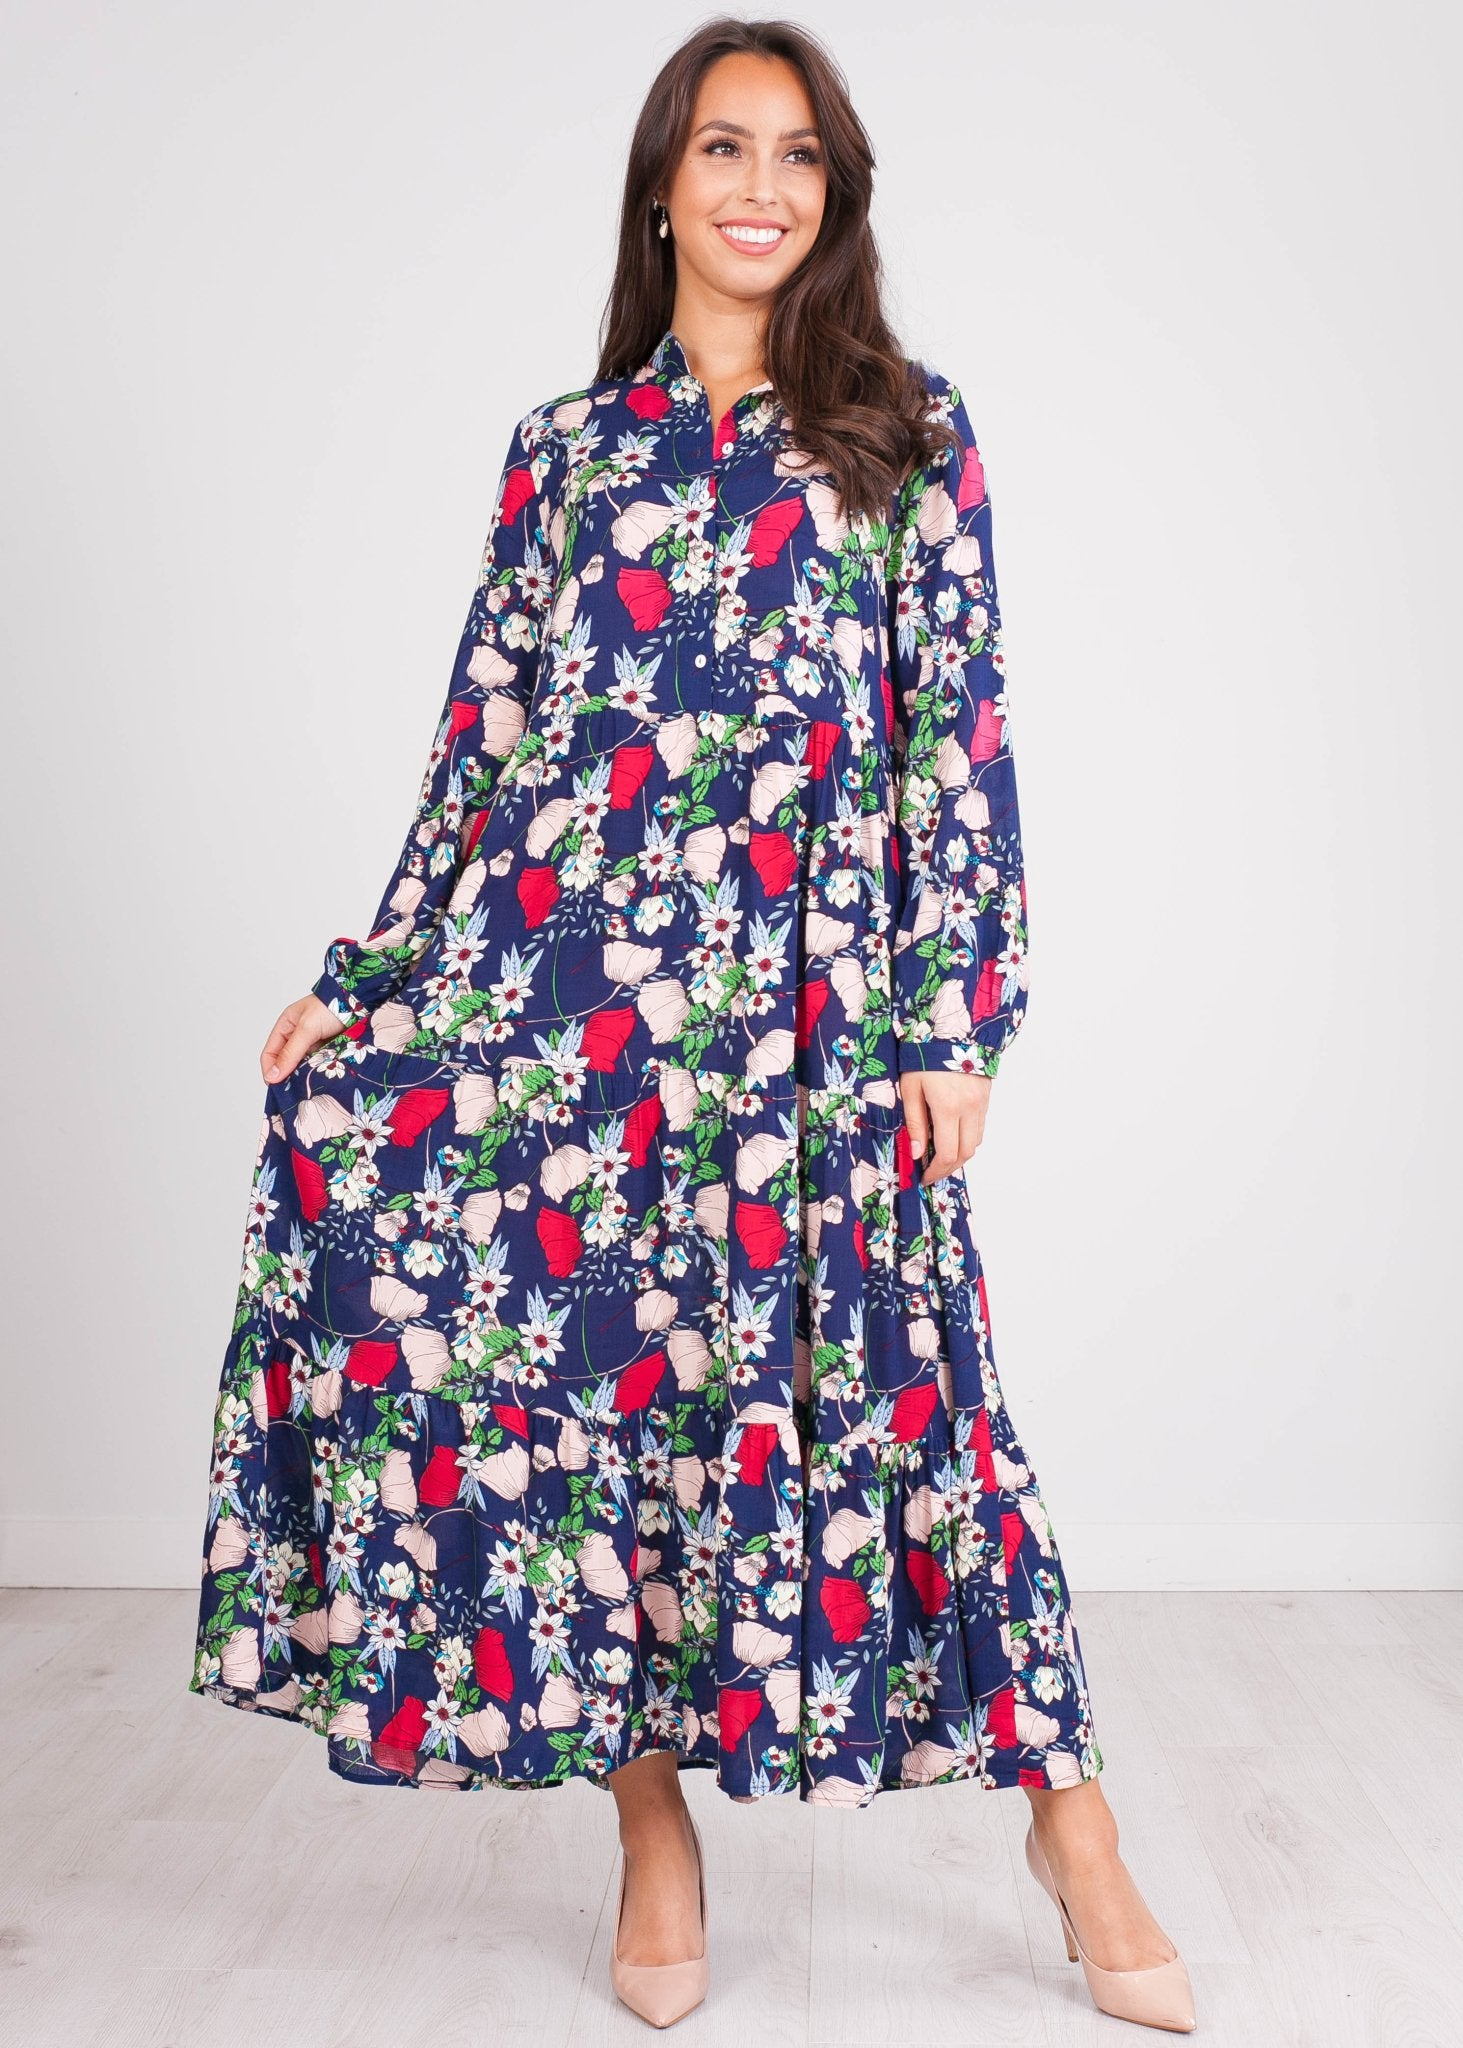 FiFi Navy Floral Midi Dress - The Walk in Wardrobe